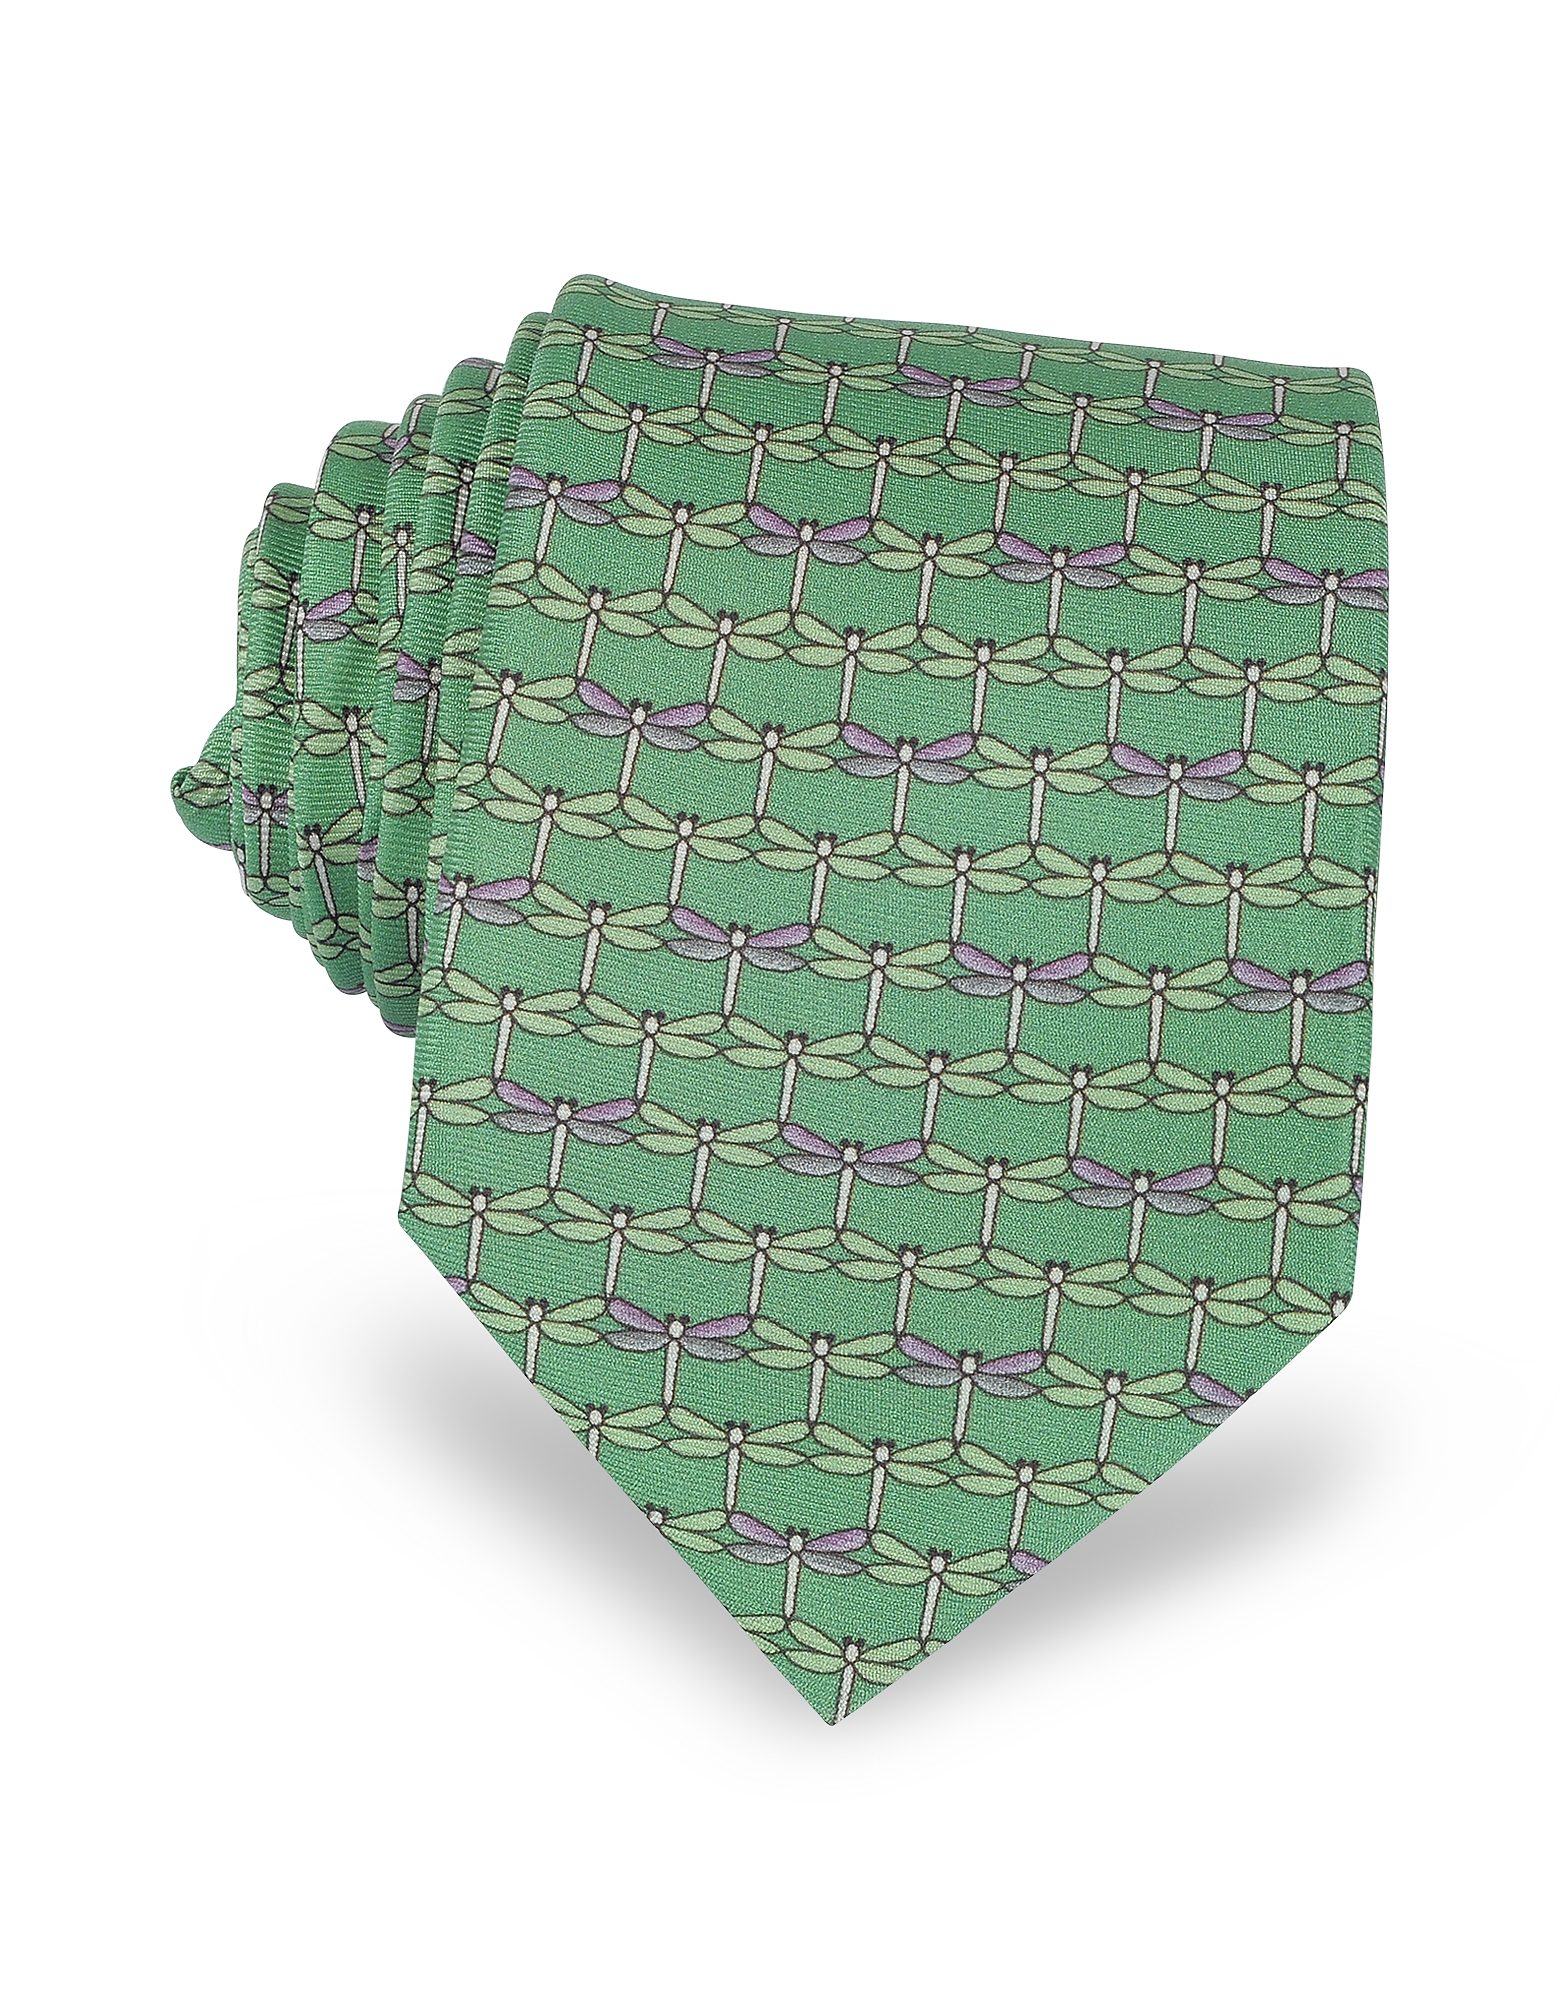 Laura Biagiotti Ties, Green Dragonflies Print Twill Silk Tie